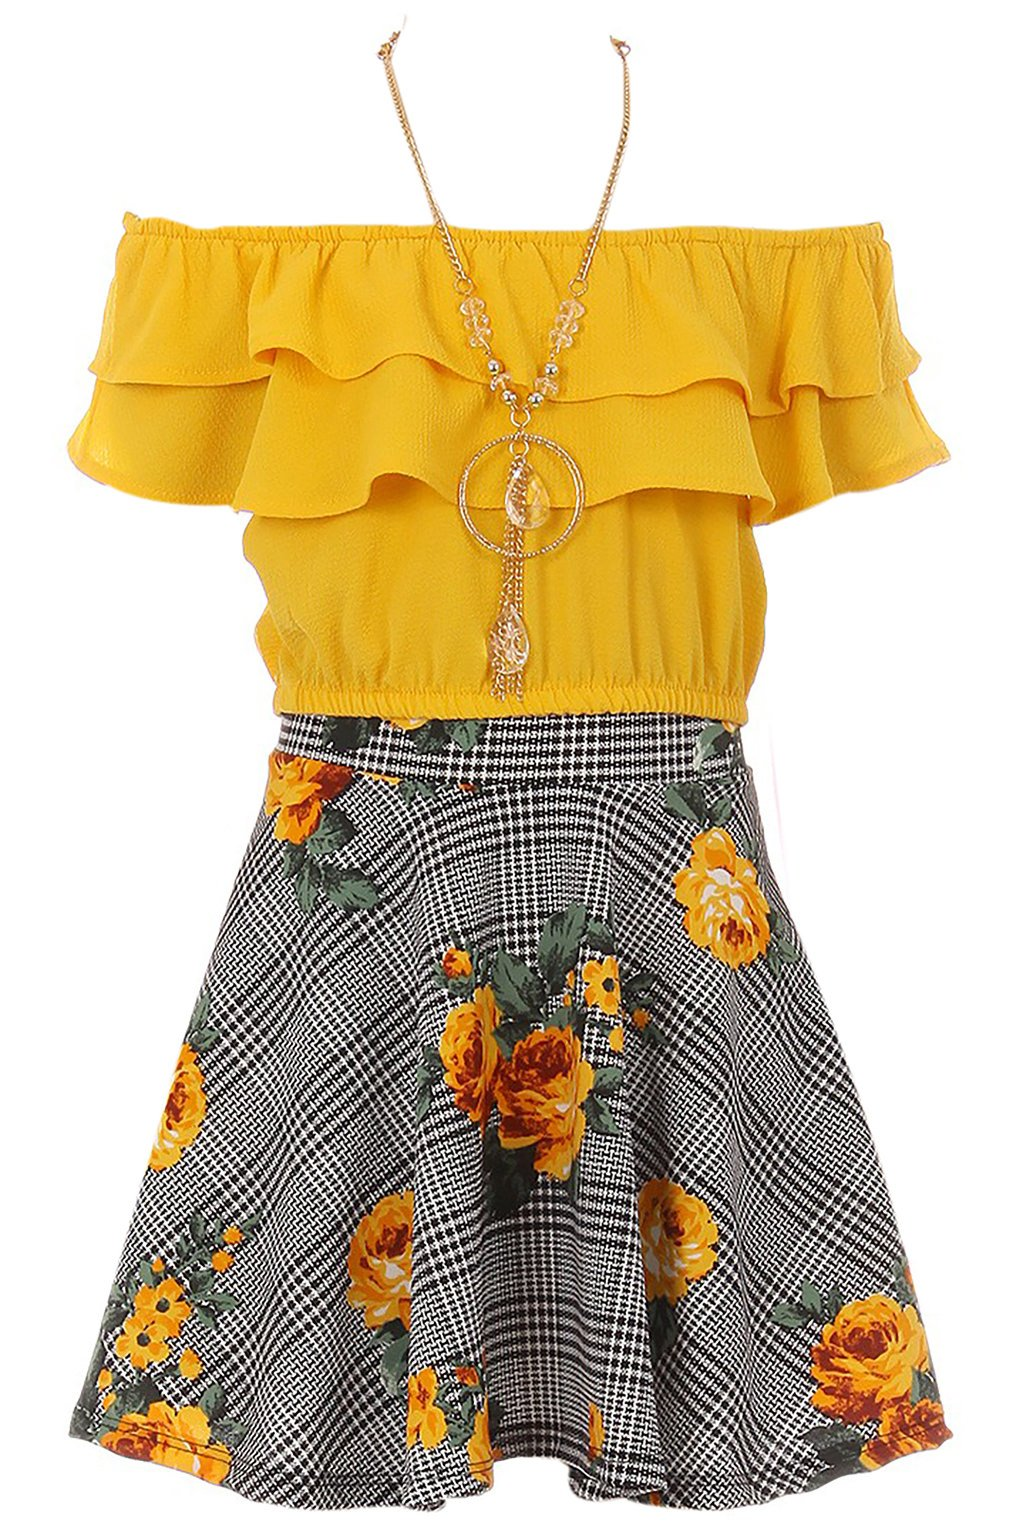 Big Girls' Off Shoulder Tops Skirt Necklace 3 Pieces Party Summer Clothing Set Yellow 8 (J21KS30S)